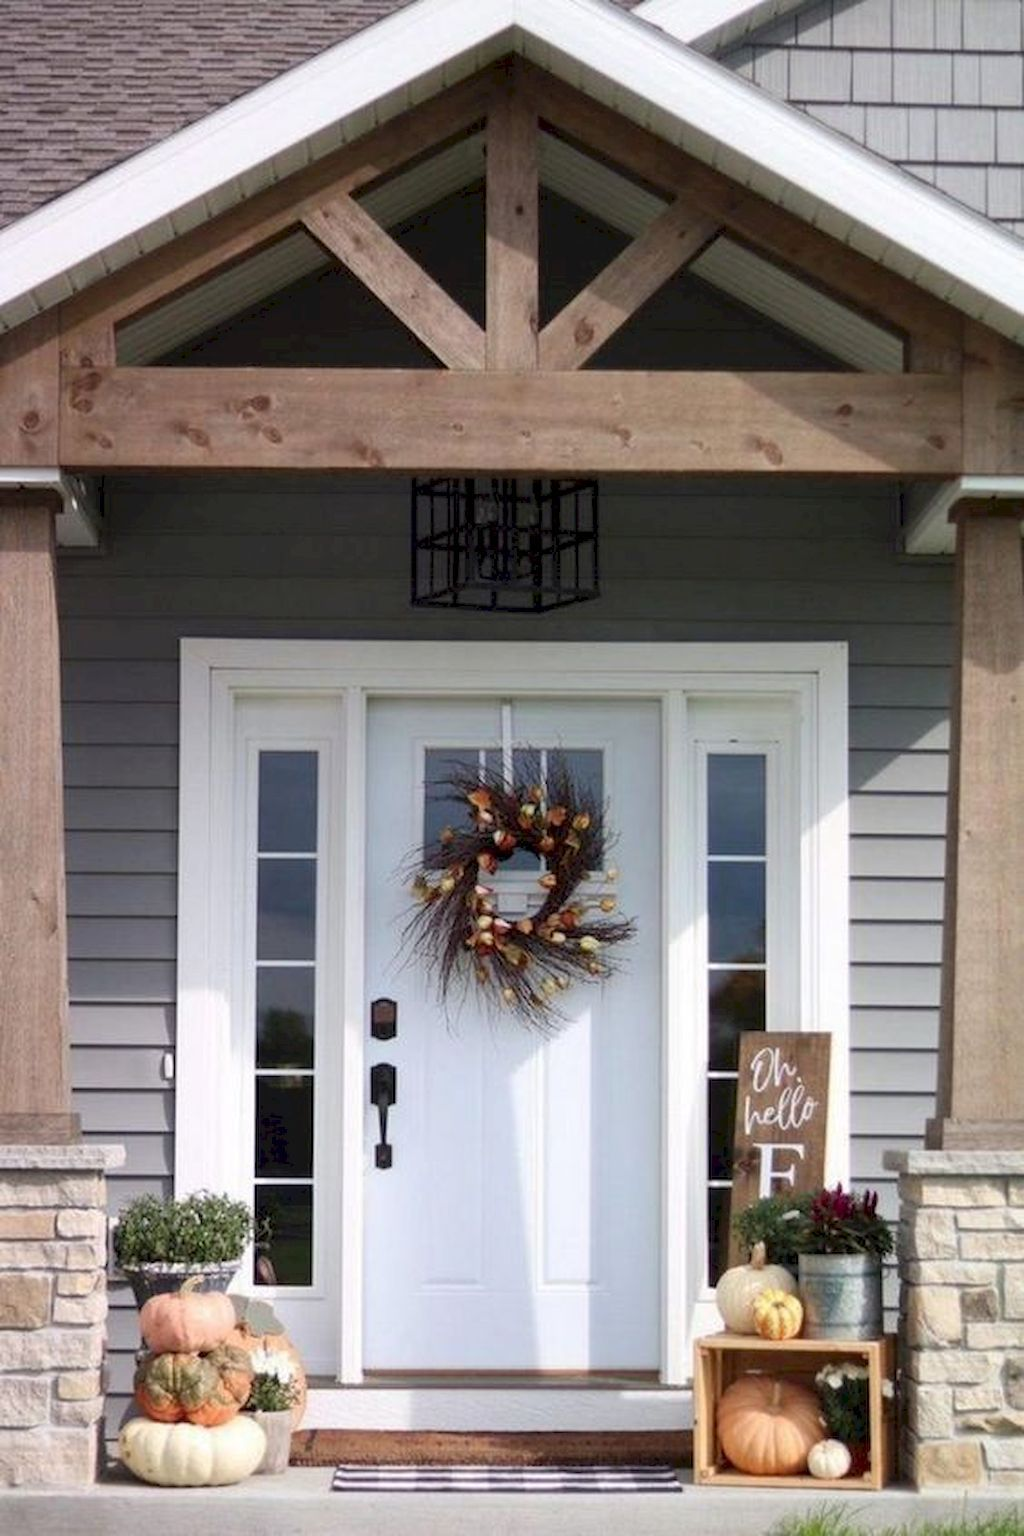 60 beautiful rustic farmhouse front porches design and on beautiful modern farmhouse trending exterior design ideas id=12337